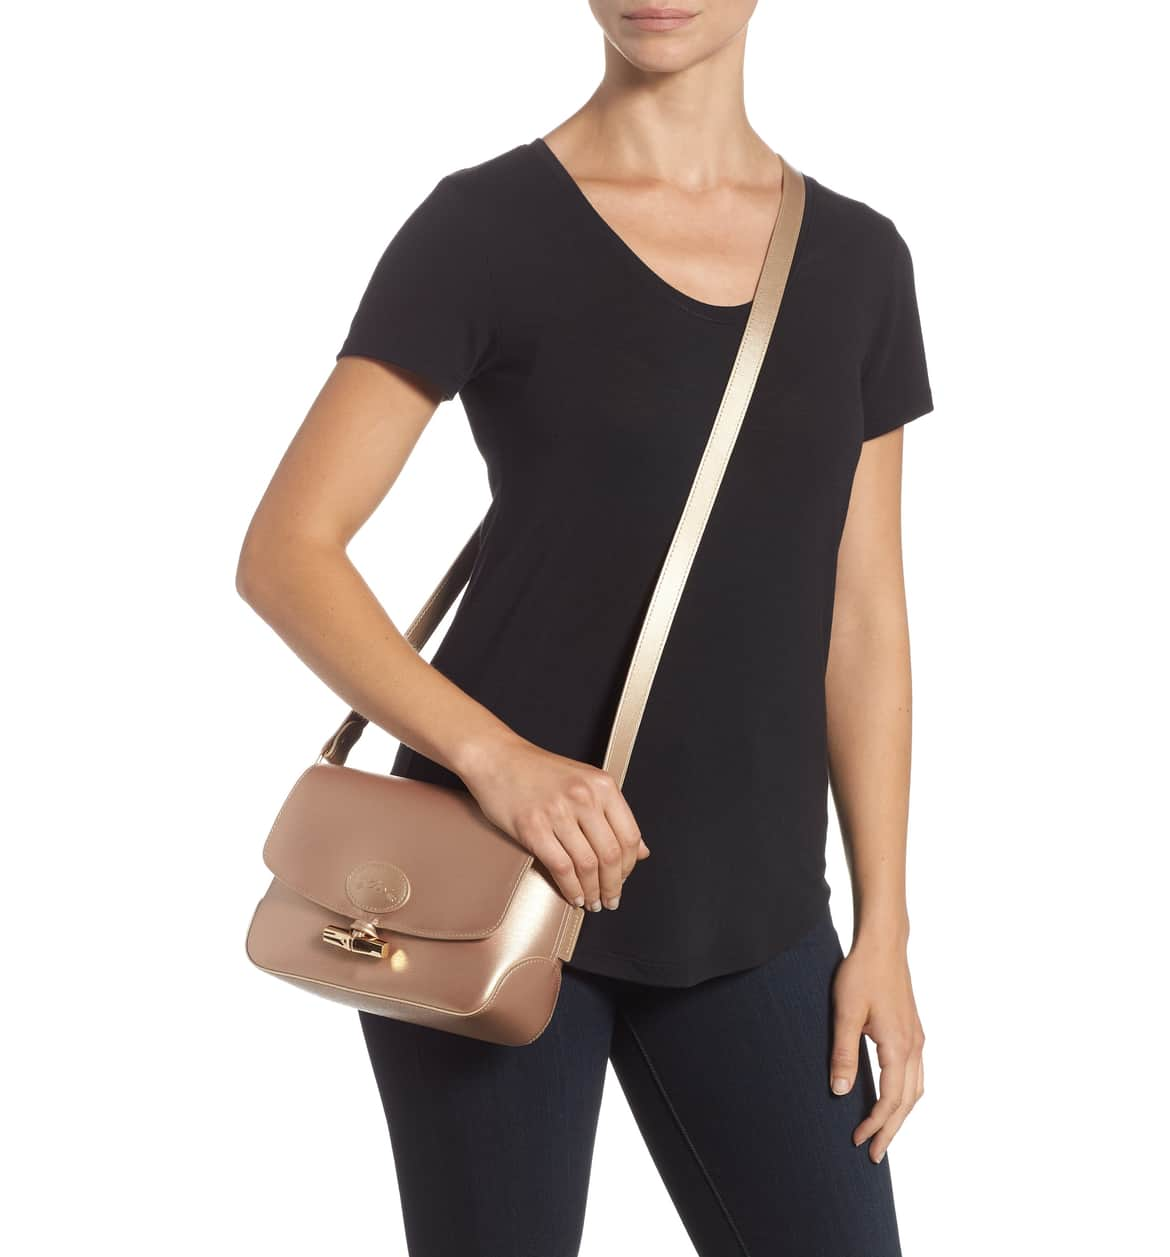 gold cross body bag long champ